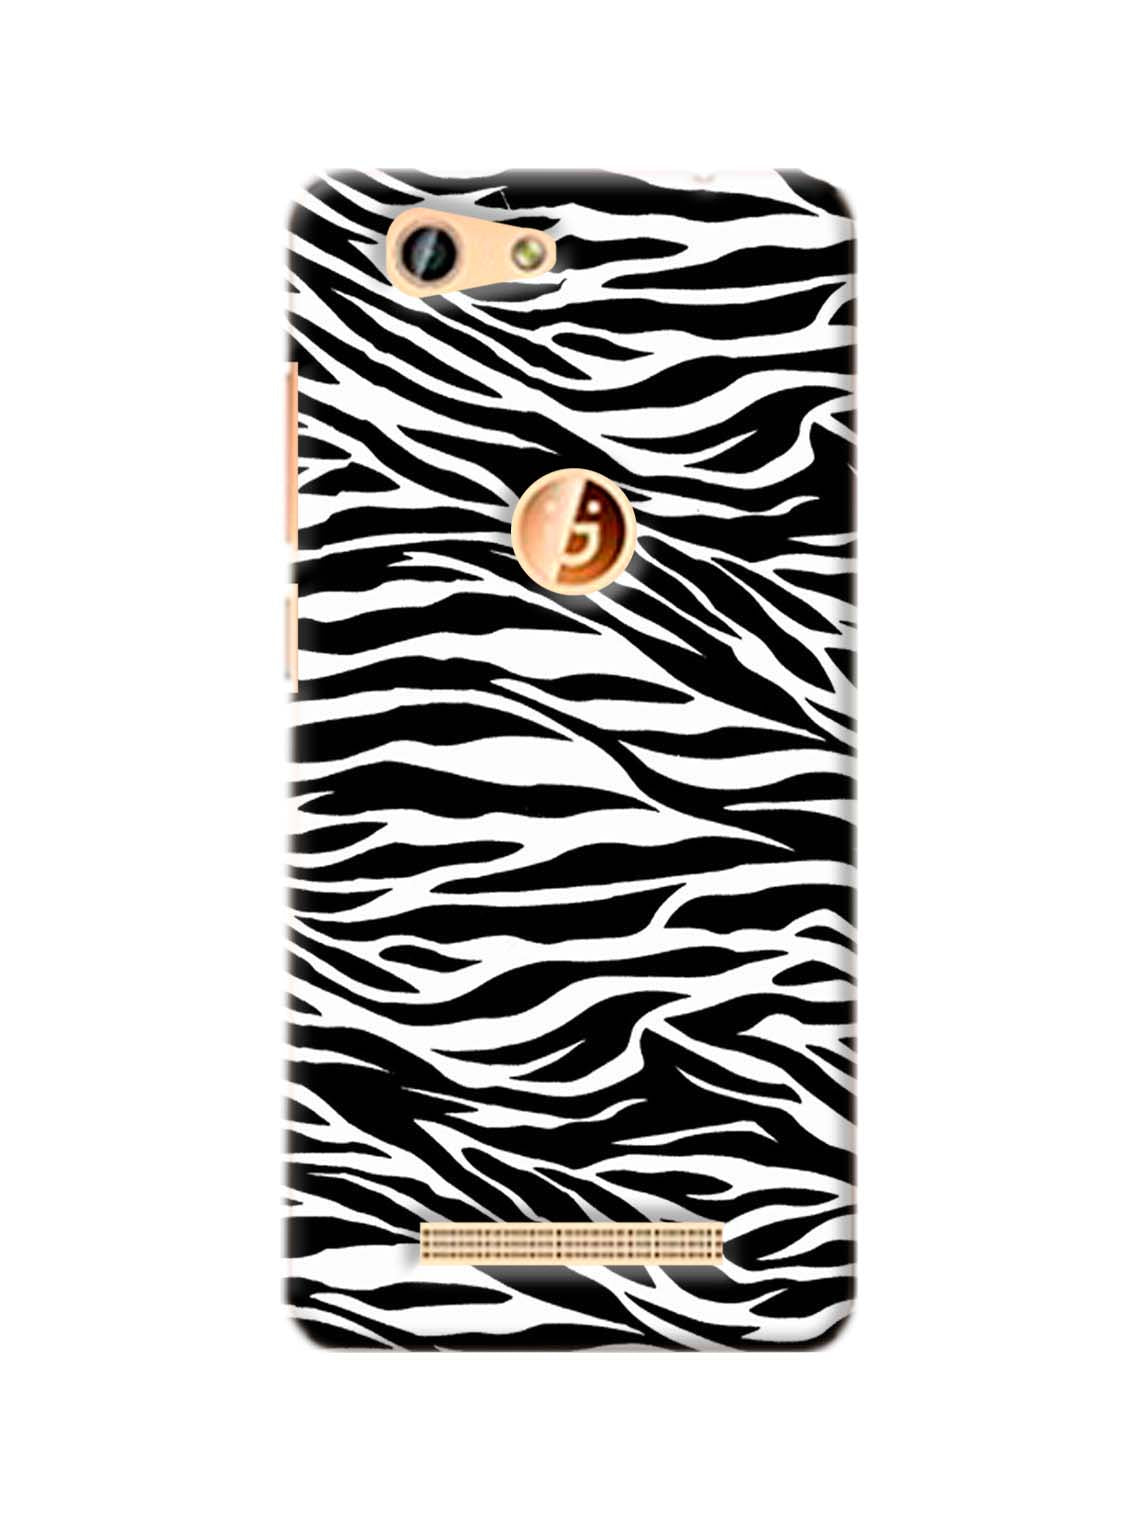 Zebra Texture Printed Mobile Case For Gionee F103 Pro